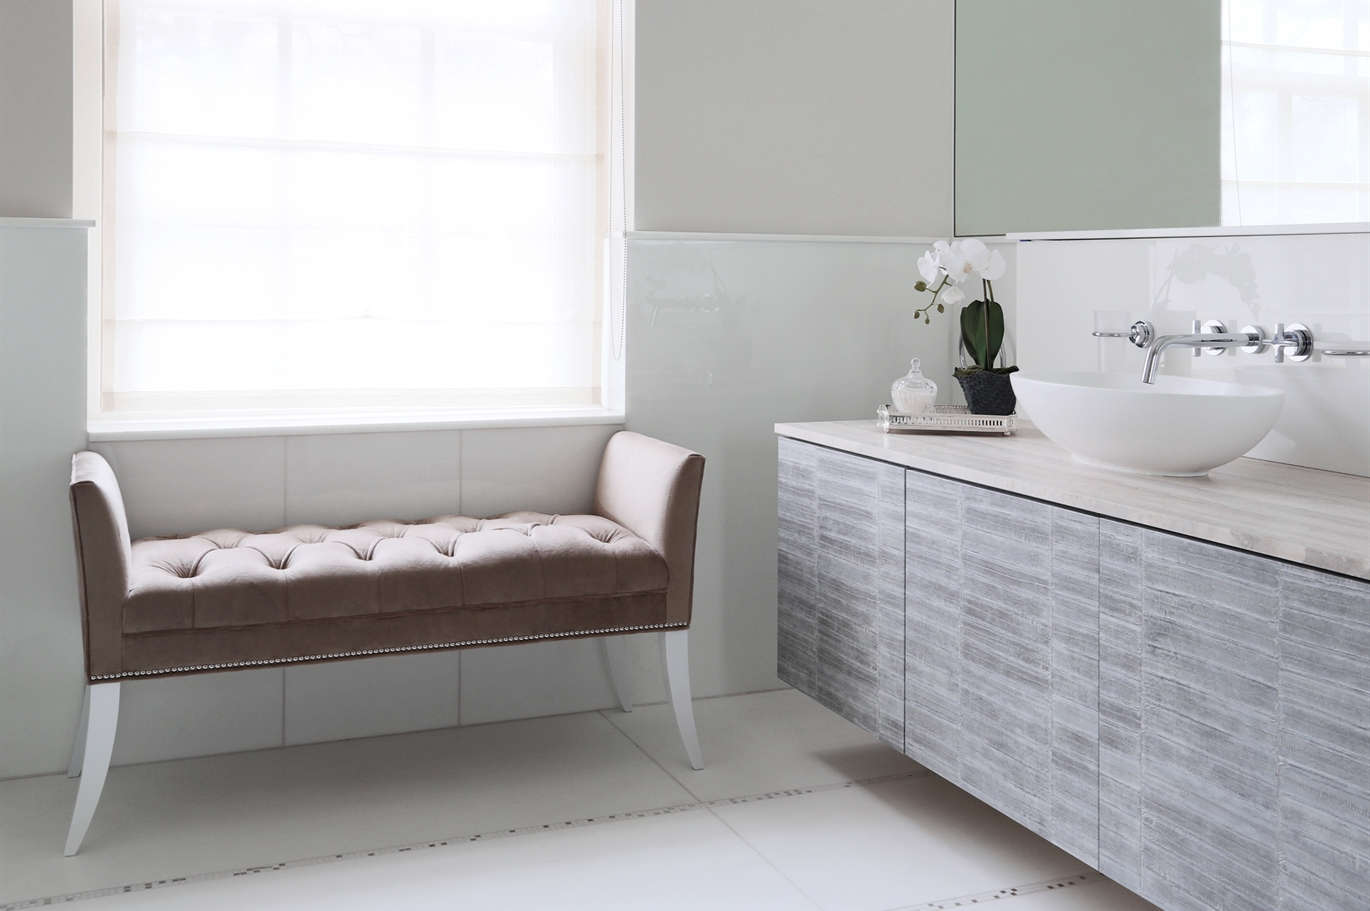 Amazing The Oldstyled Bathroom Furniture From Years Gone By Will Never Go Out Of Fashion These Timeless Designs Are Firmly Positioned Within The Hearts Of Many Homeowners Who Want A Luxury Bathroom  Bathrooms Throughout The UK And